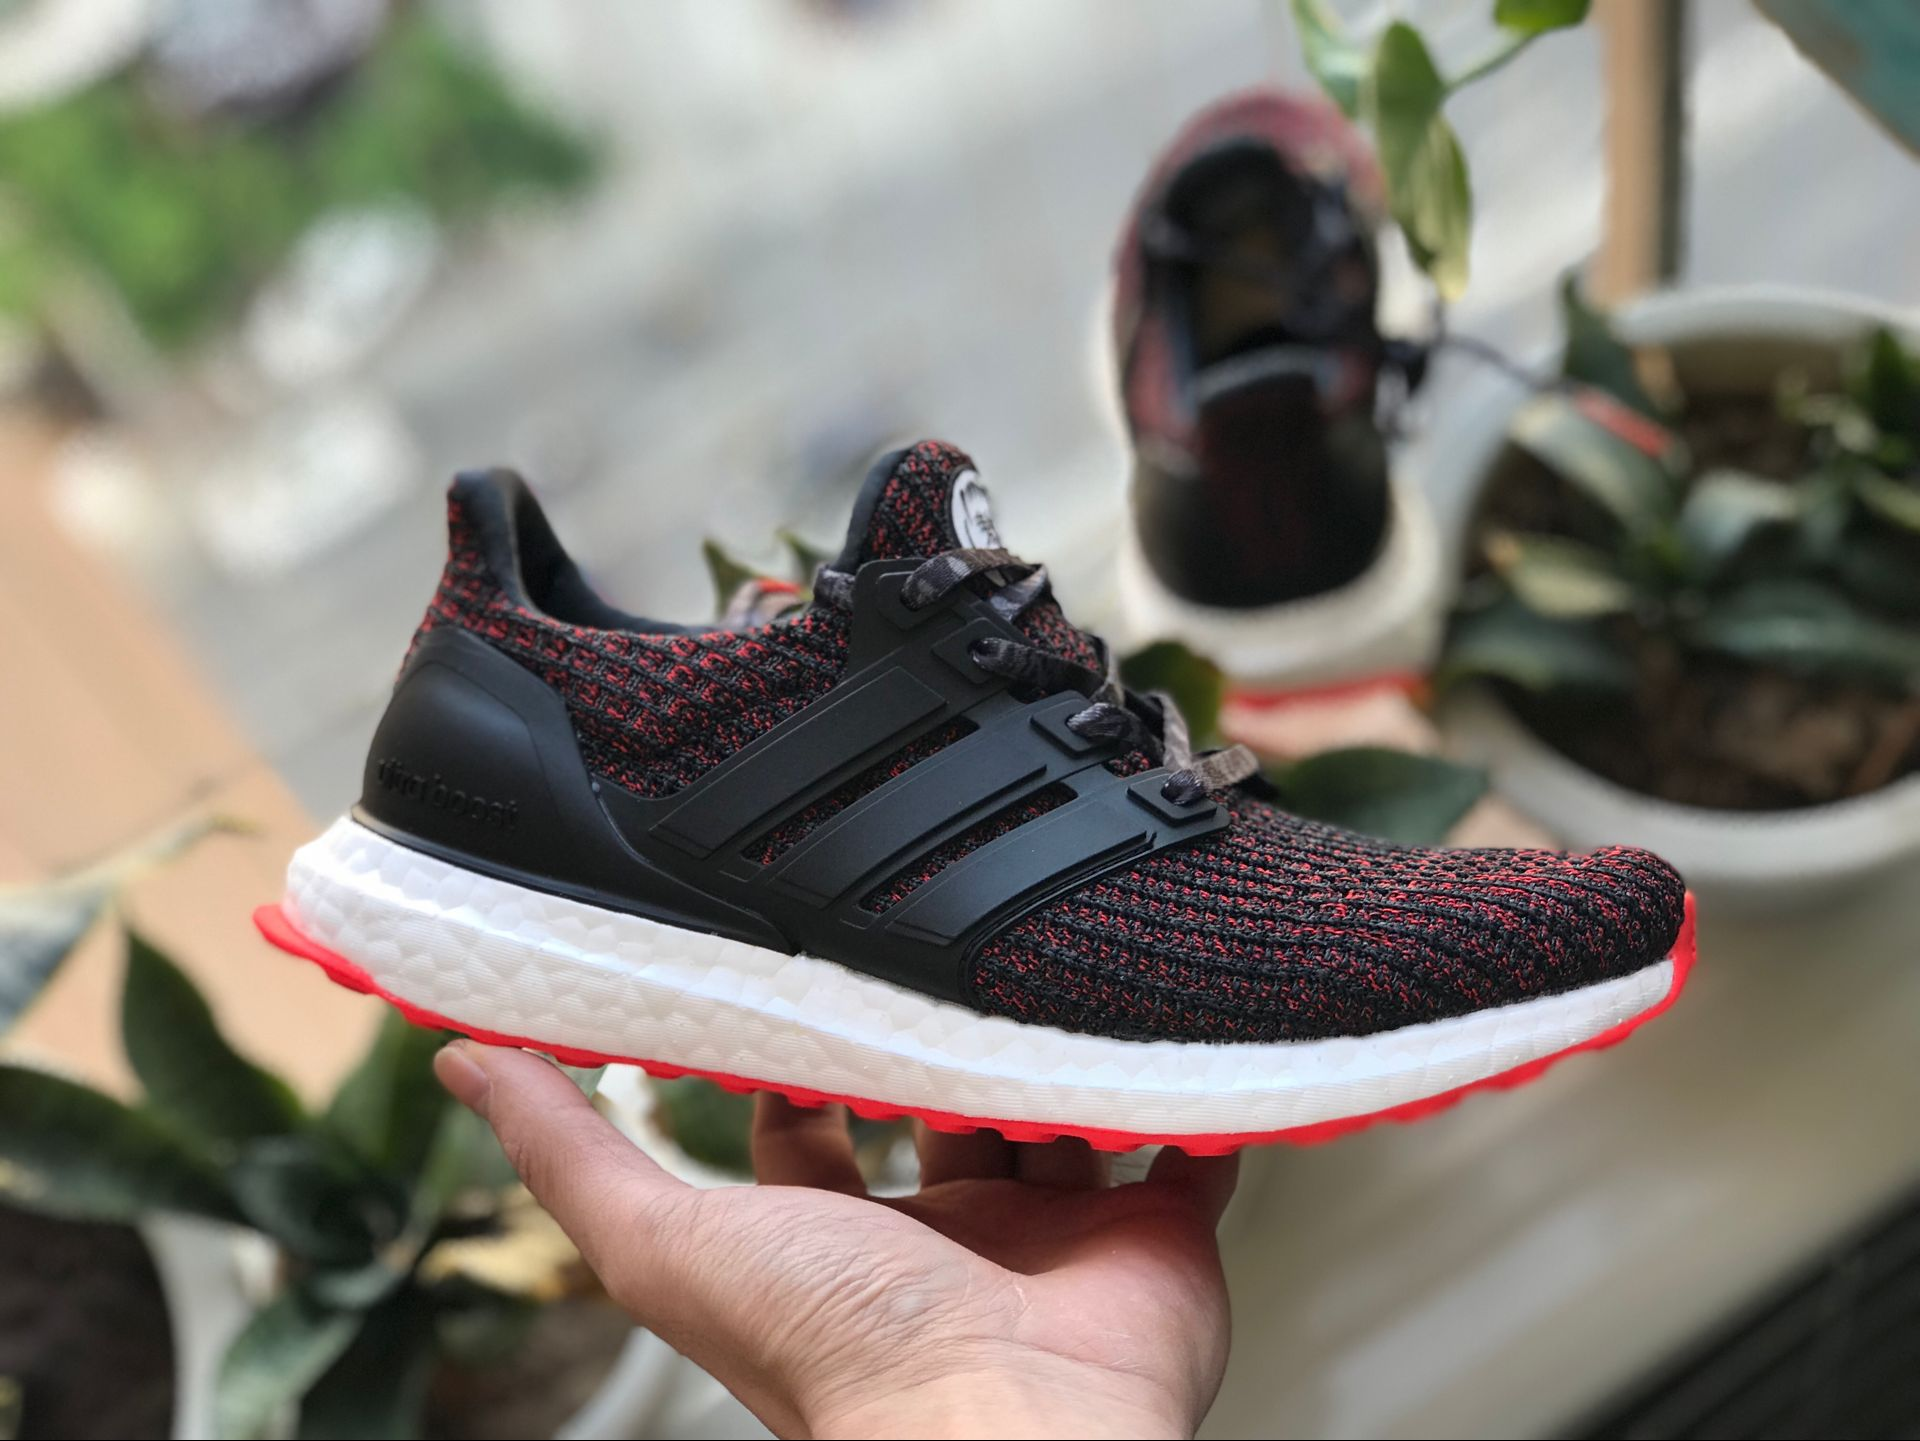 Wholesale HOT 2018 aaaaa quality ARKYN shoes        Ultra Boost ub4.0 shoes 4